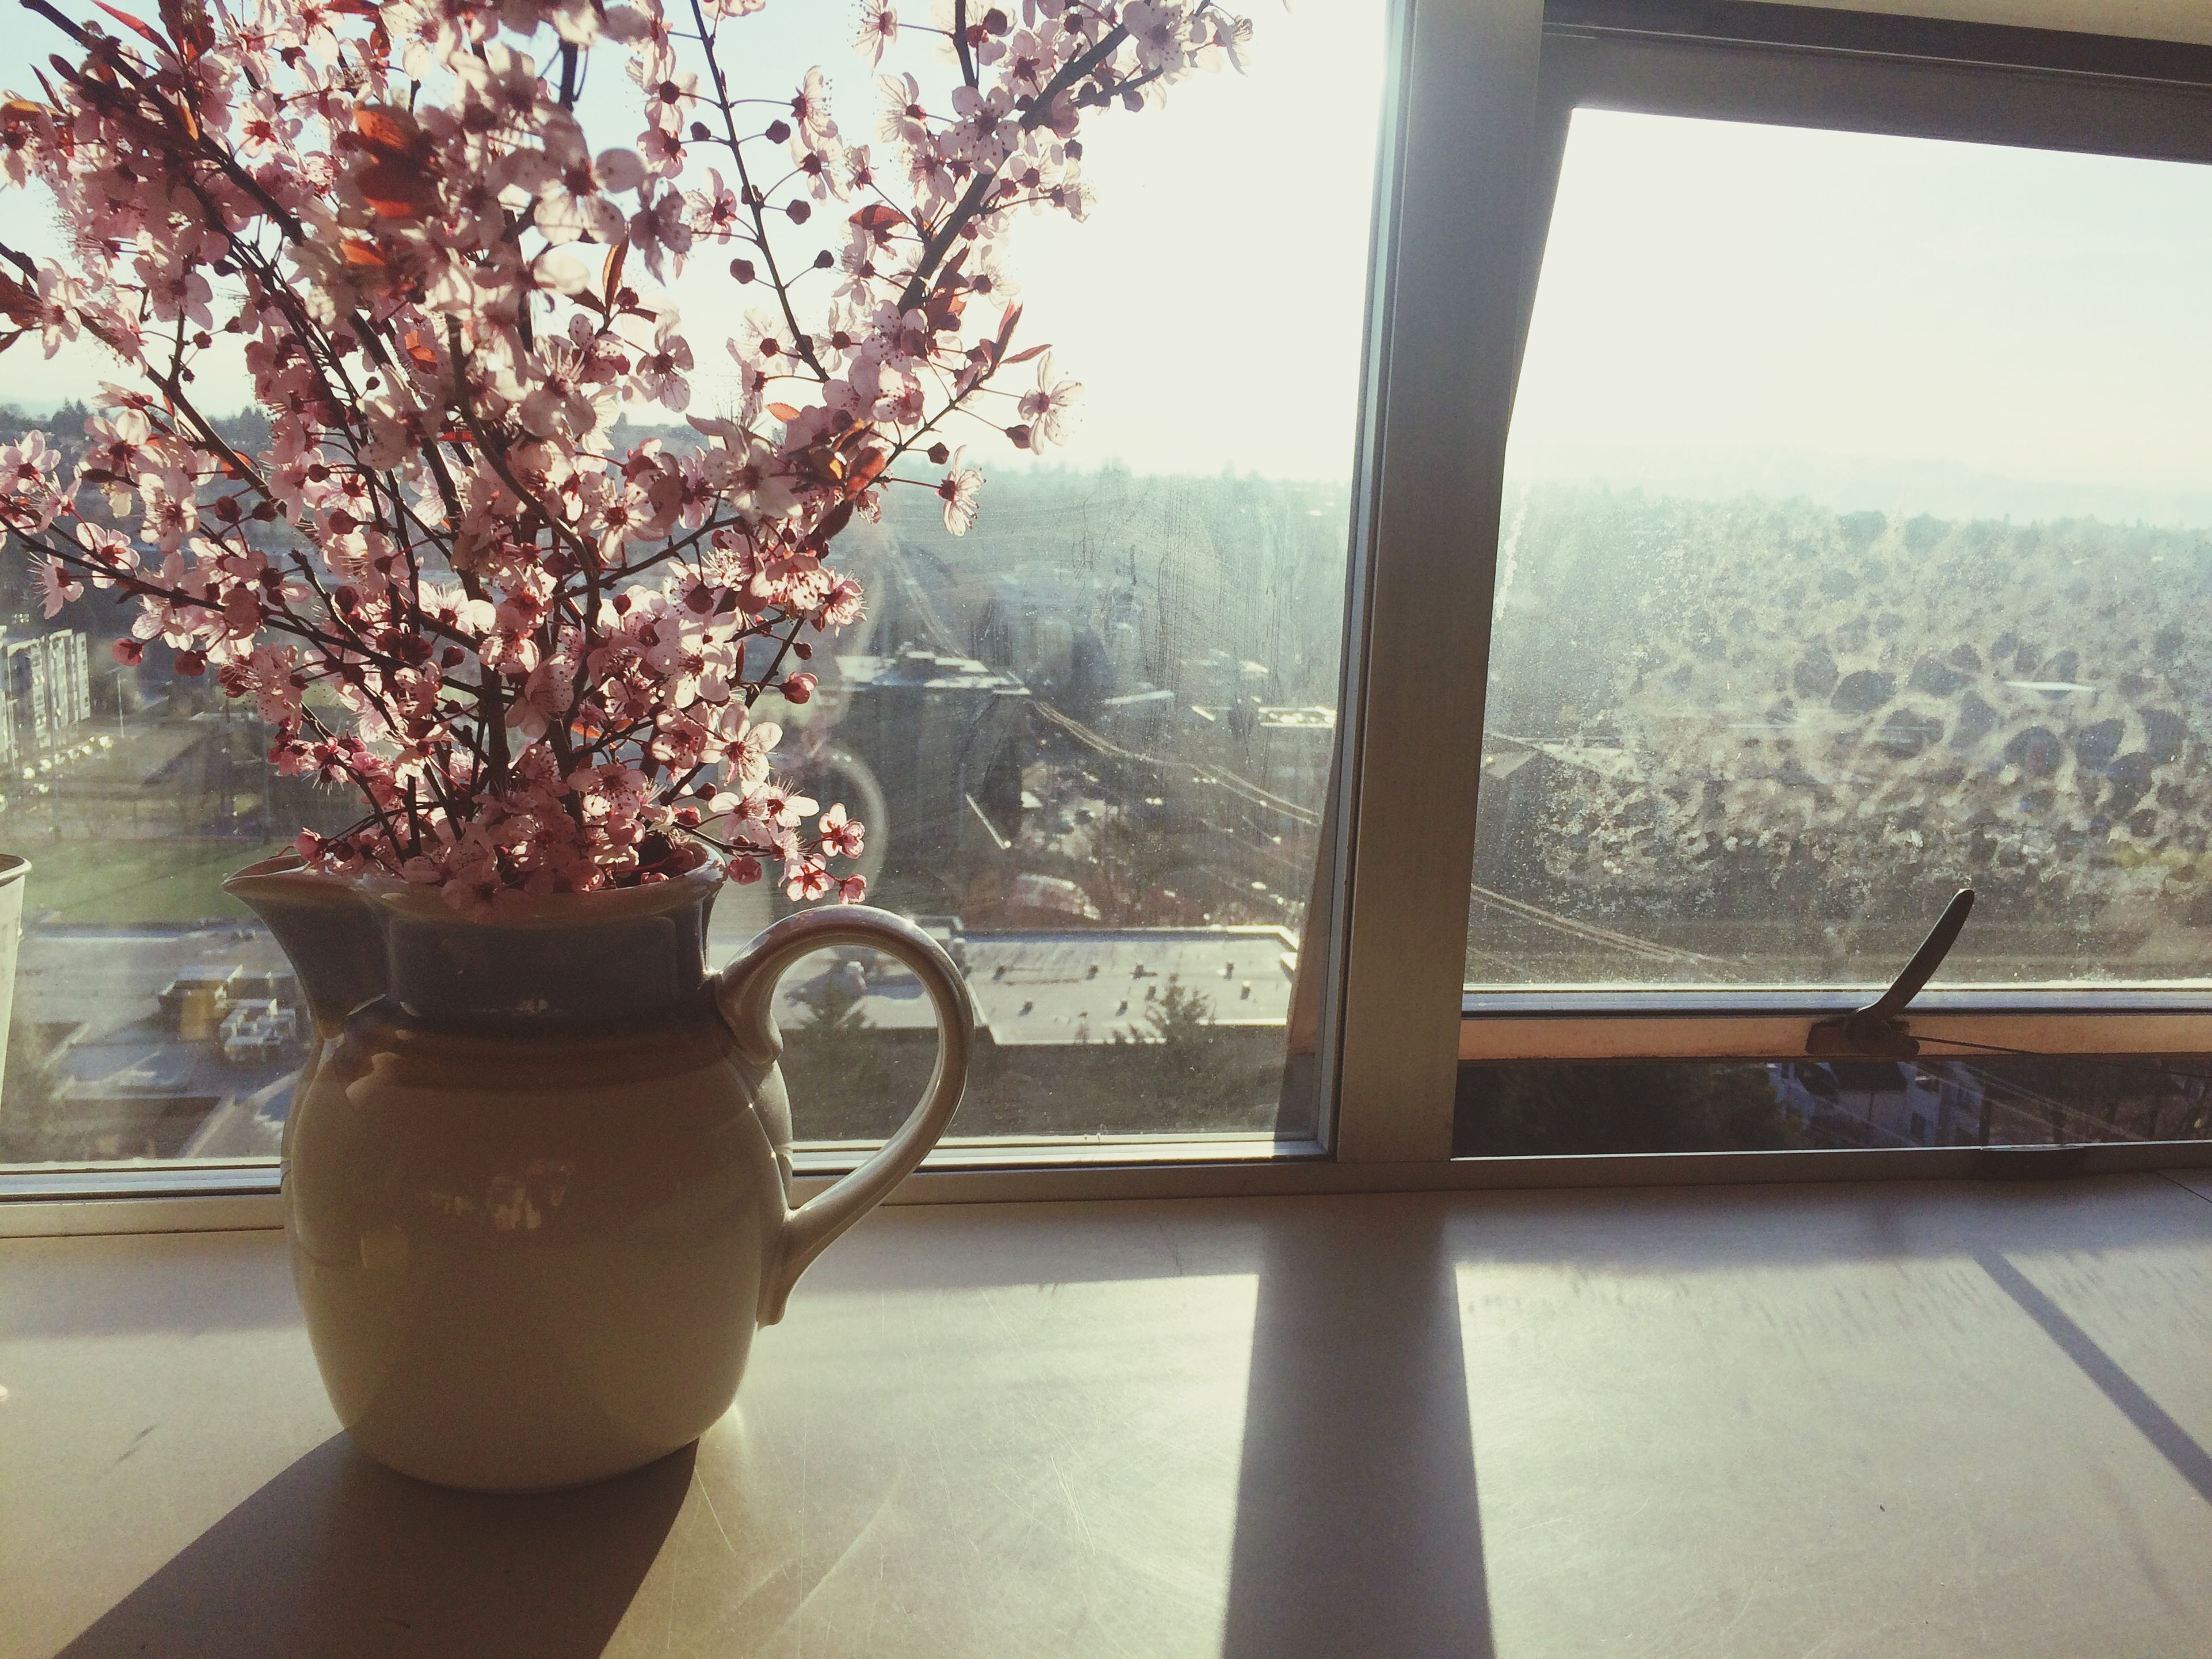 indoors, window, table, glass - material, transparent, built structure, architecture, plant, flower, chair, water, potted plant, day, growth, building exterior, window sill, sunlight, railing, home interior, clear sky